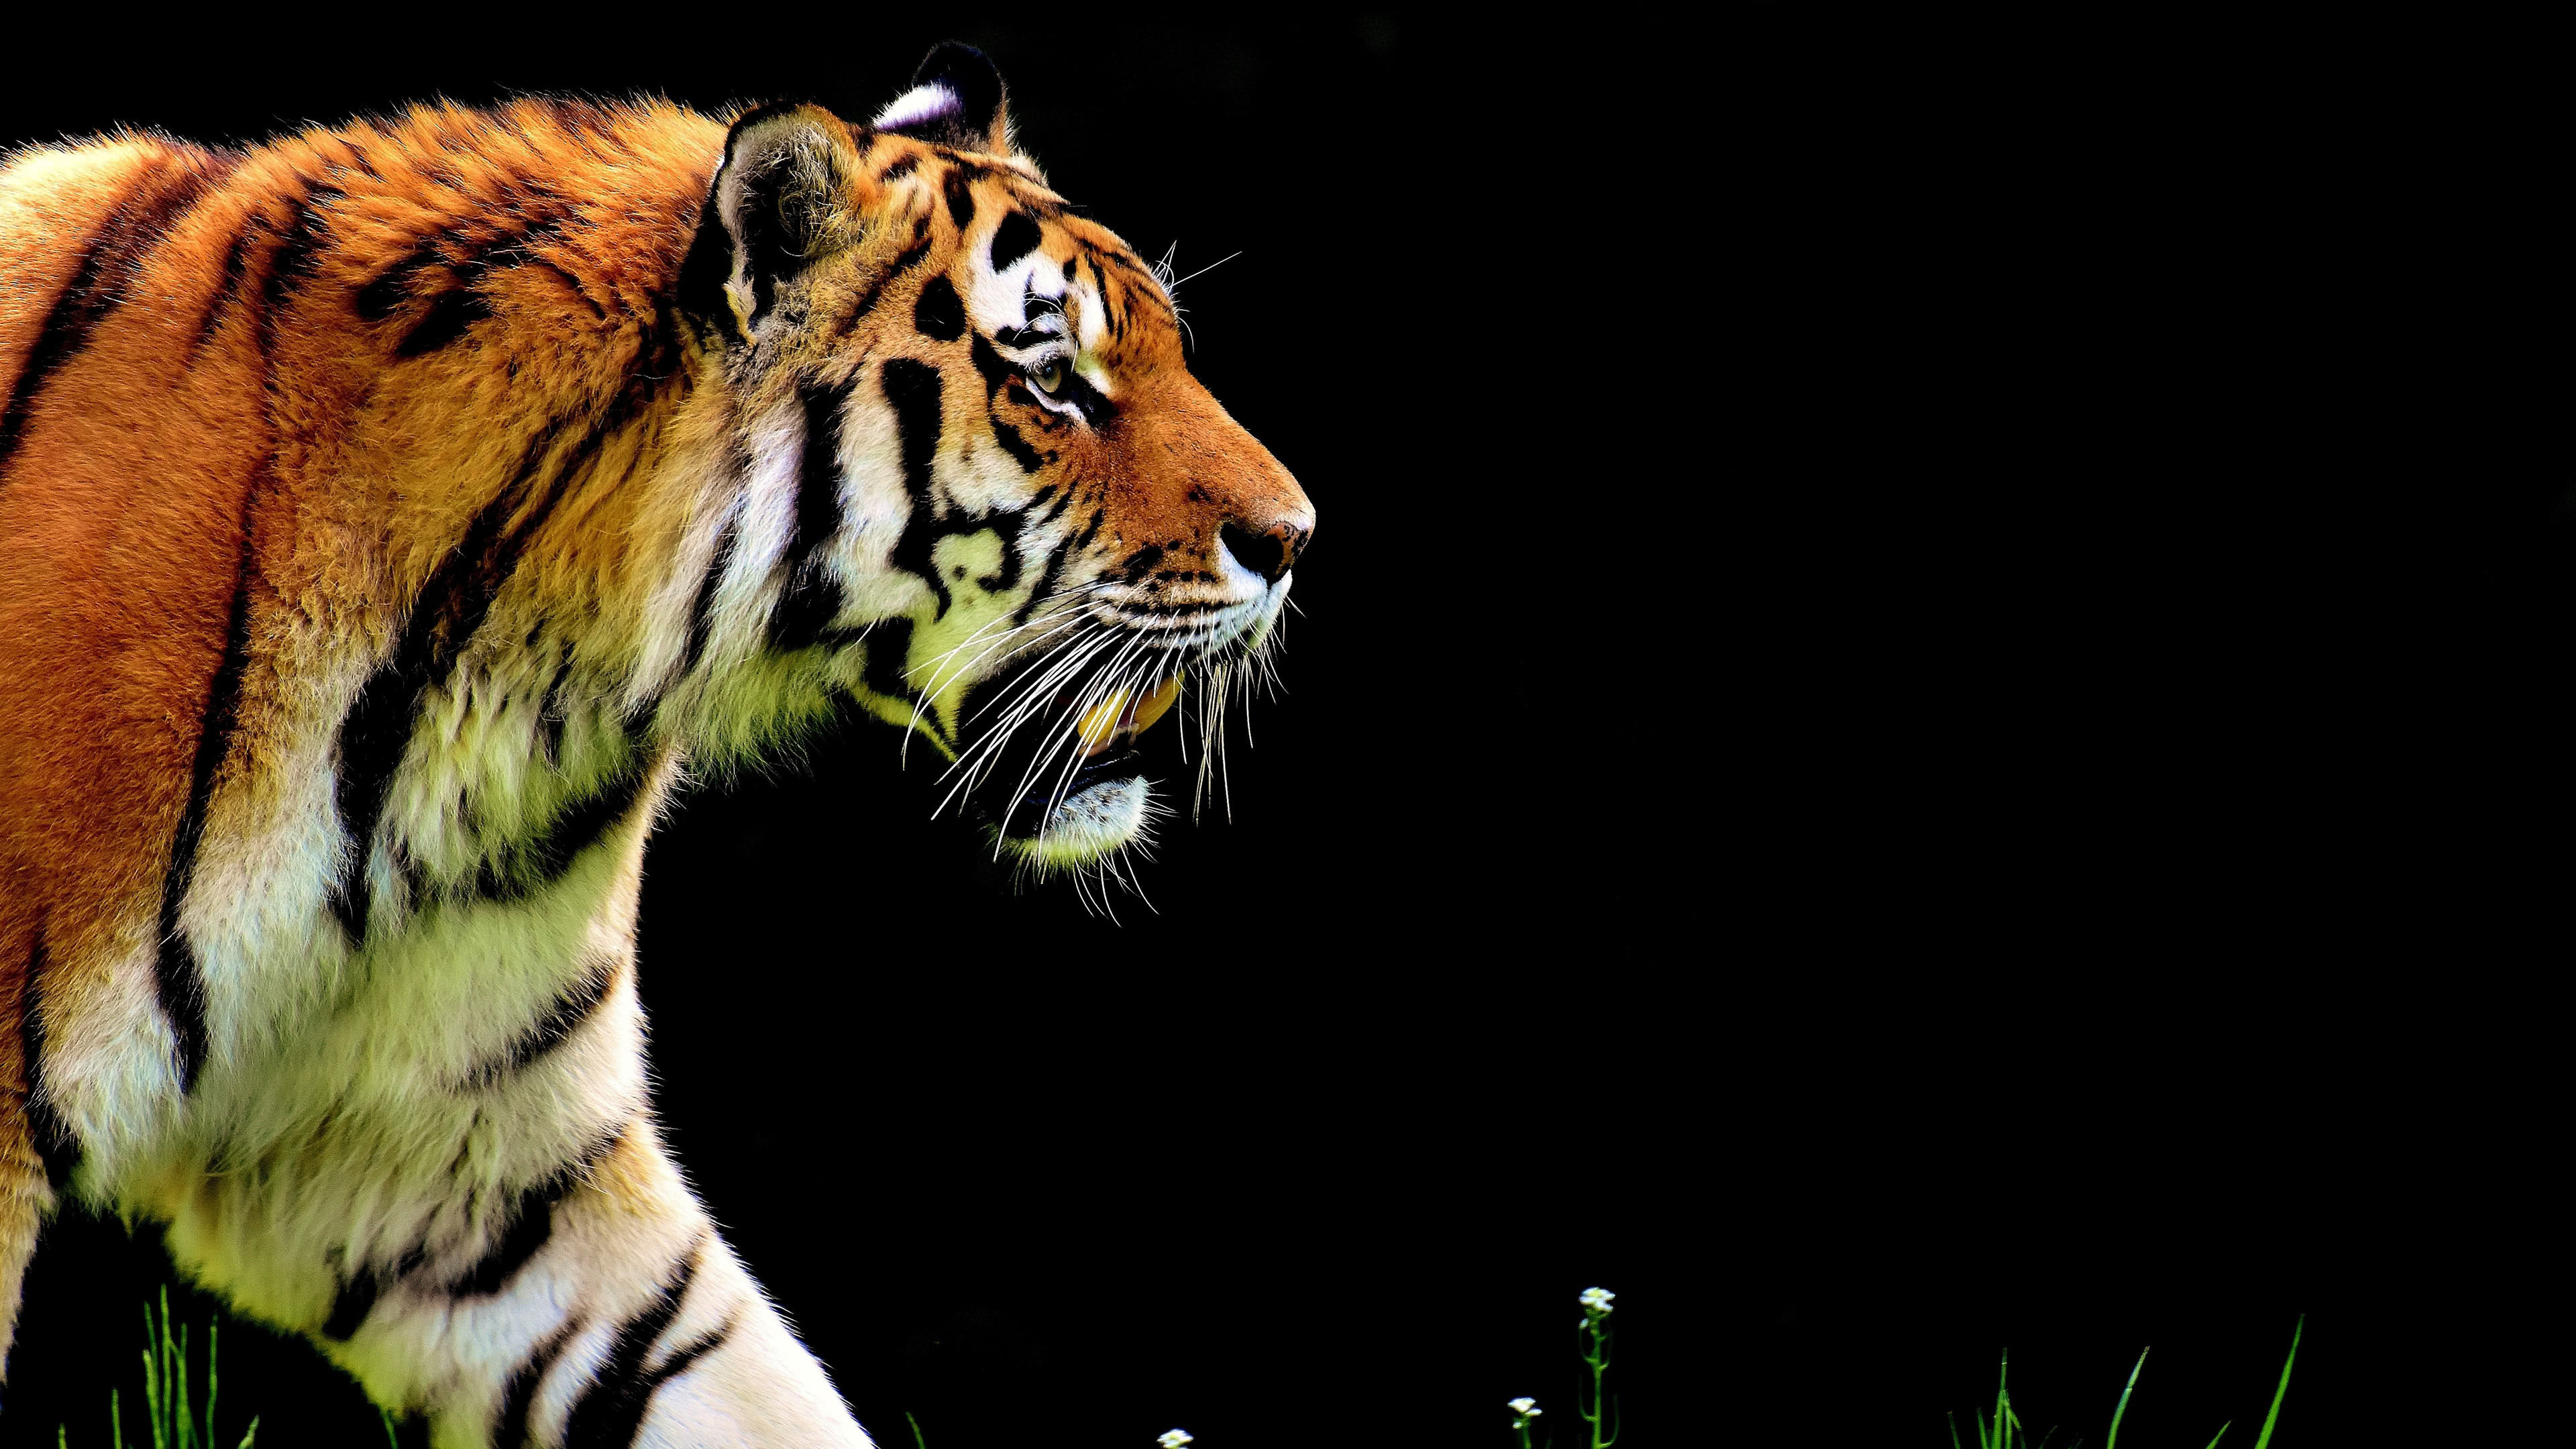 Bengal Tiger Uhd 4k Wallpaper Pixelz Cc